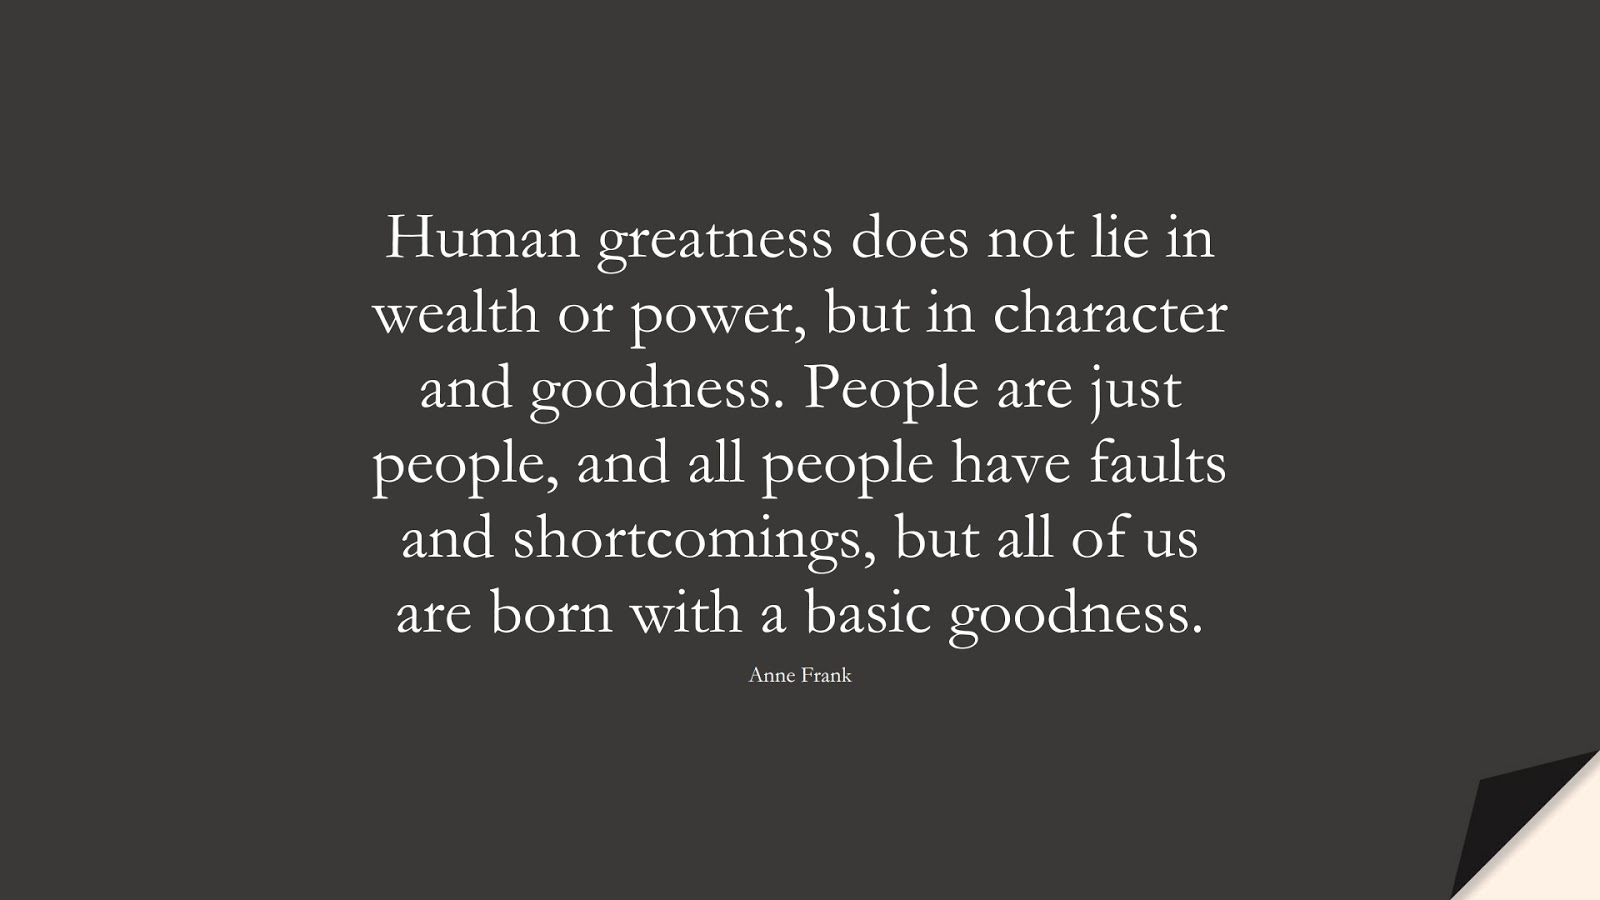 Human greatness does not lie in wealth or power, but in character and goodness. People are just people, and all people have faults and shortcomings, but all of us are born with a basic goodness. (Anne Frank);  #CharacterQuotes